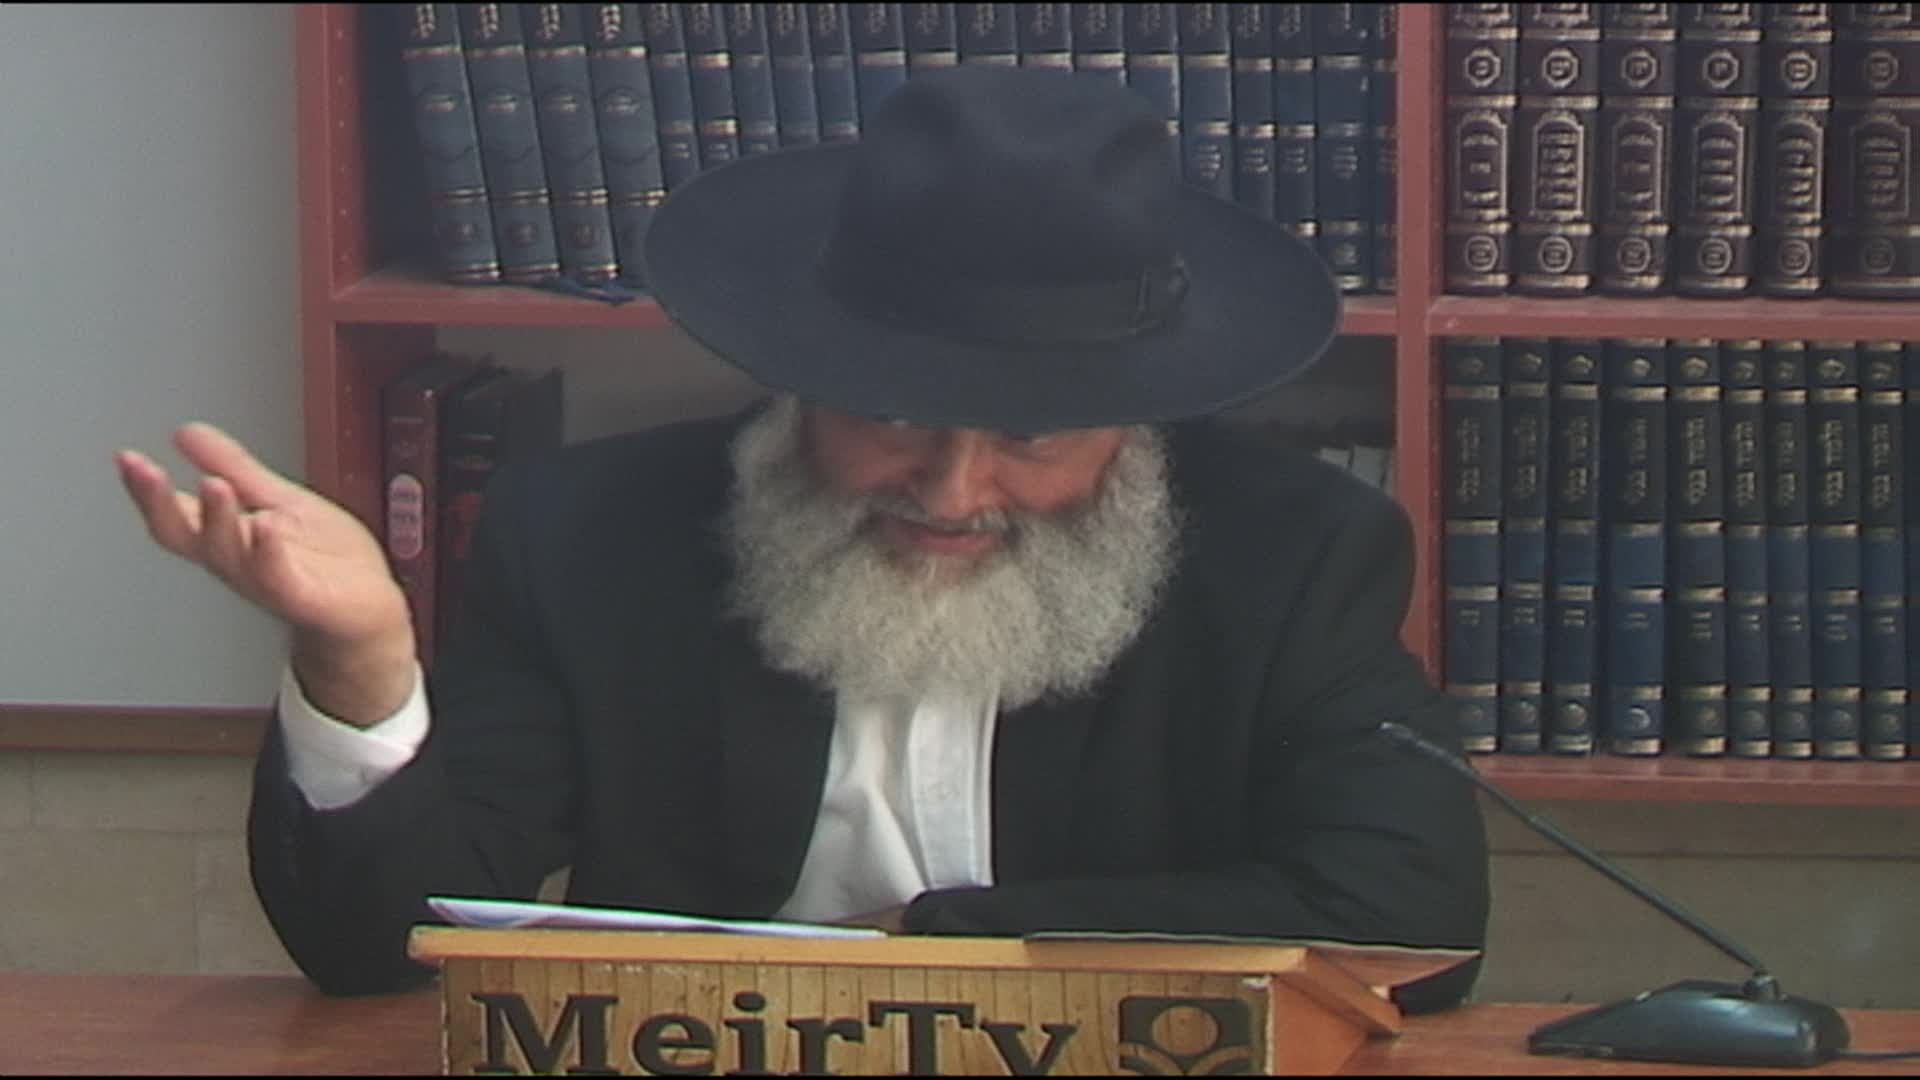 Q&A With Rav Fierman!